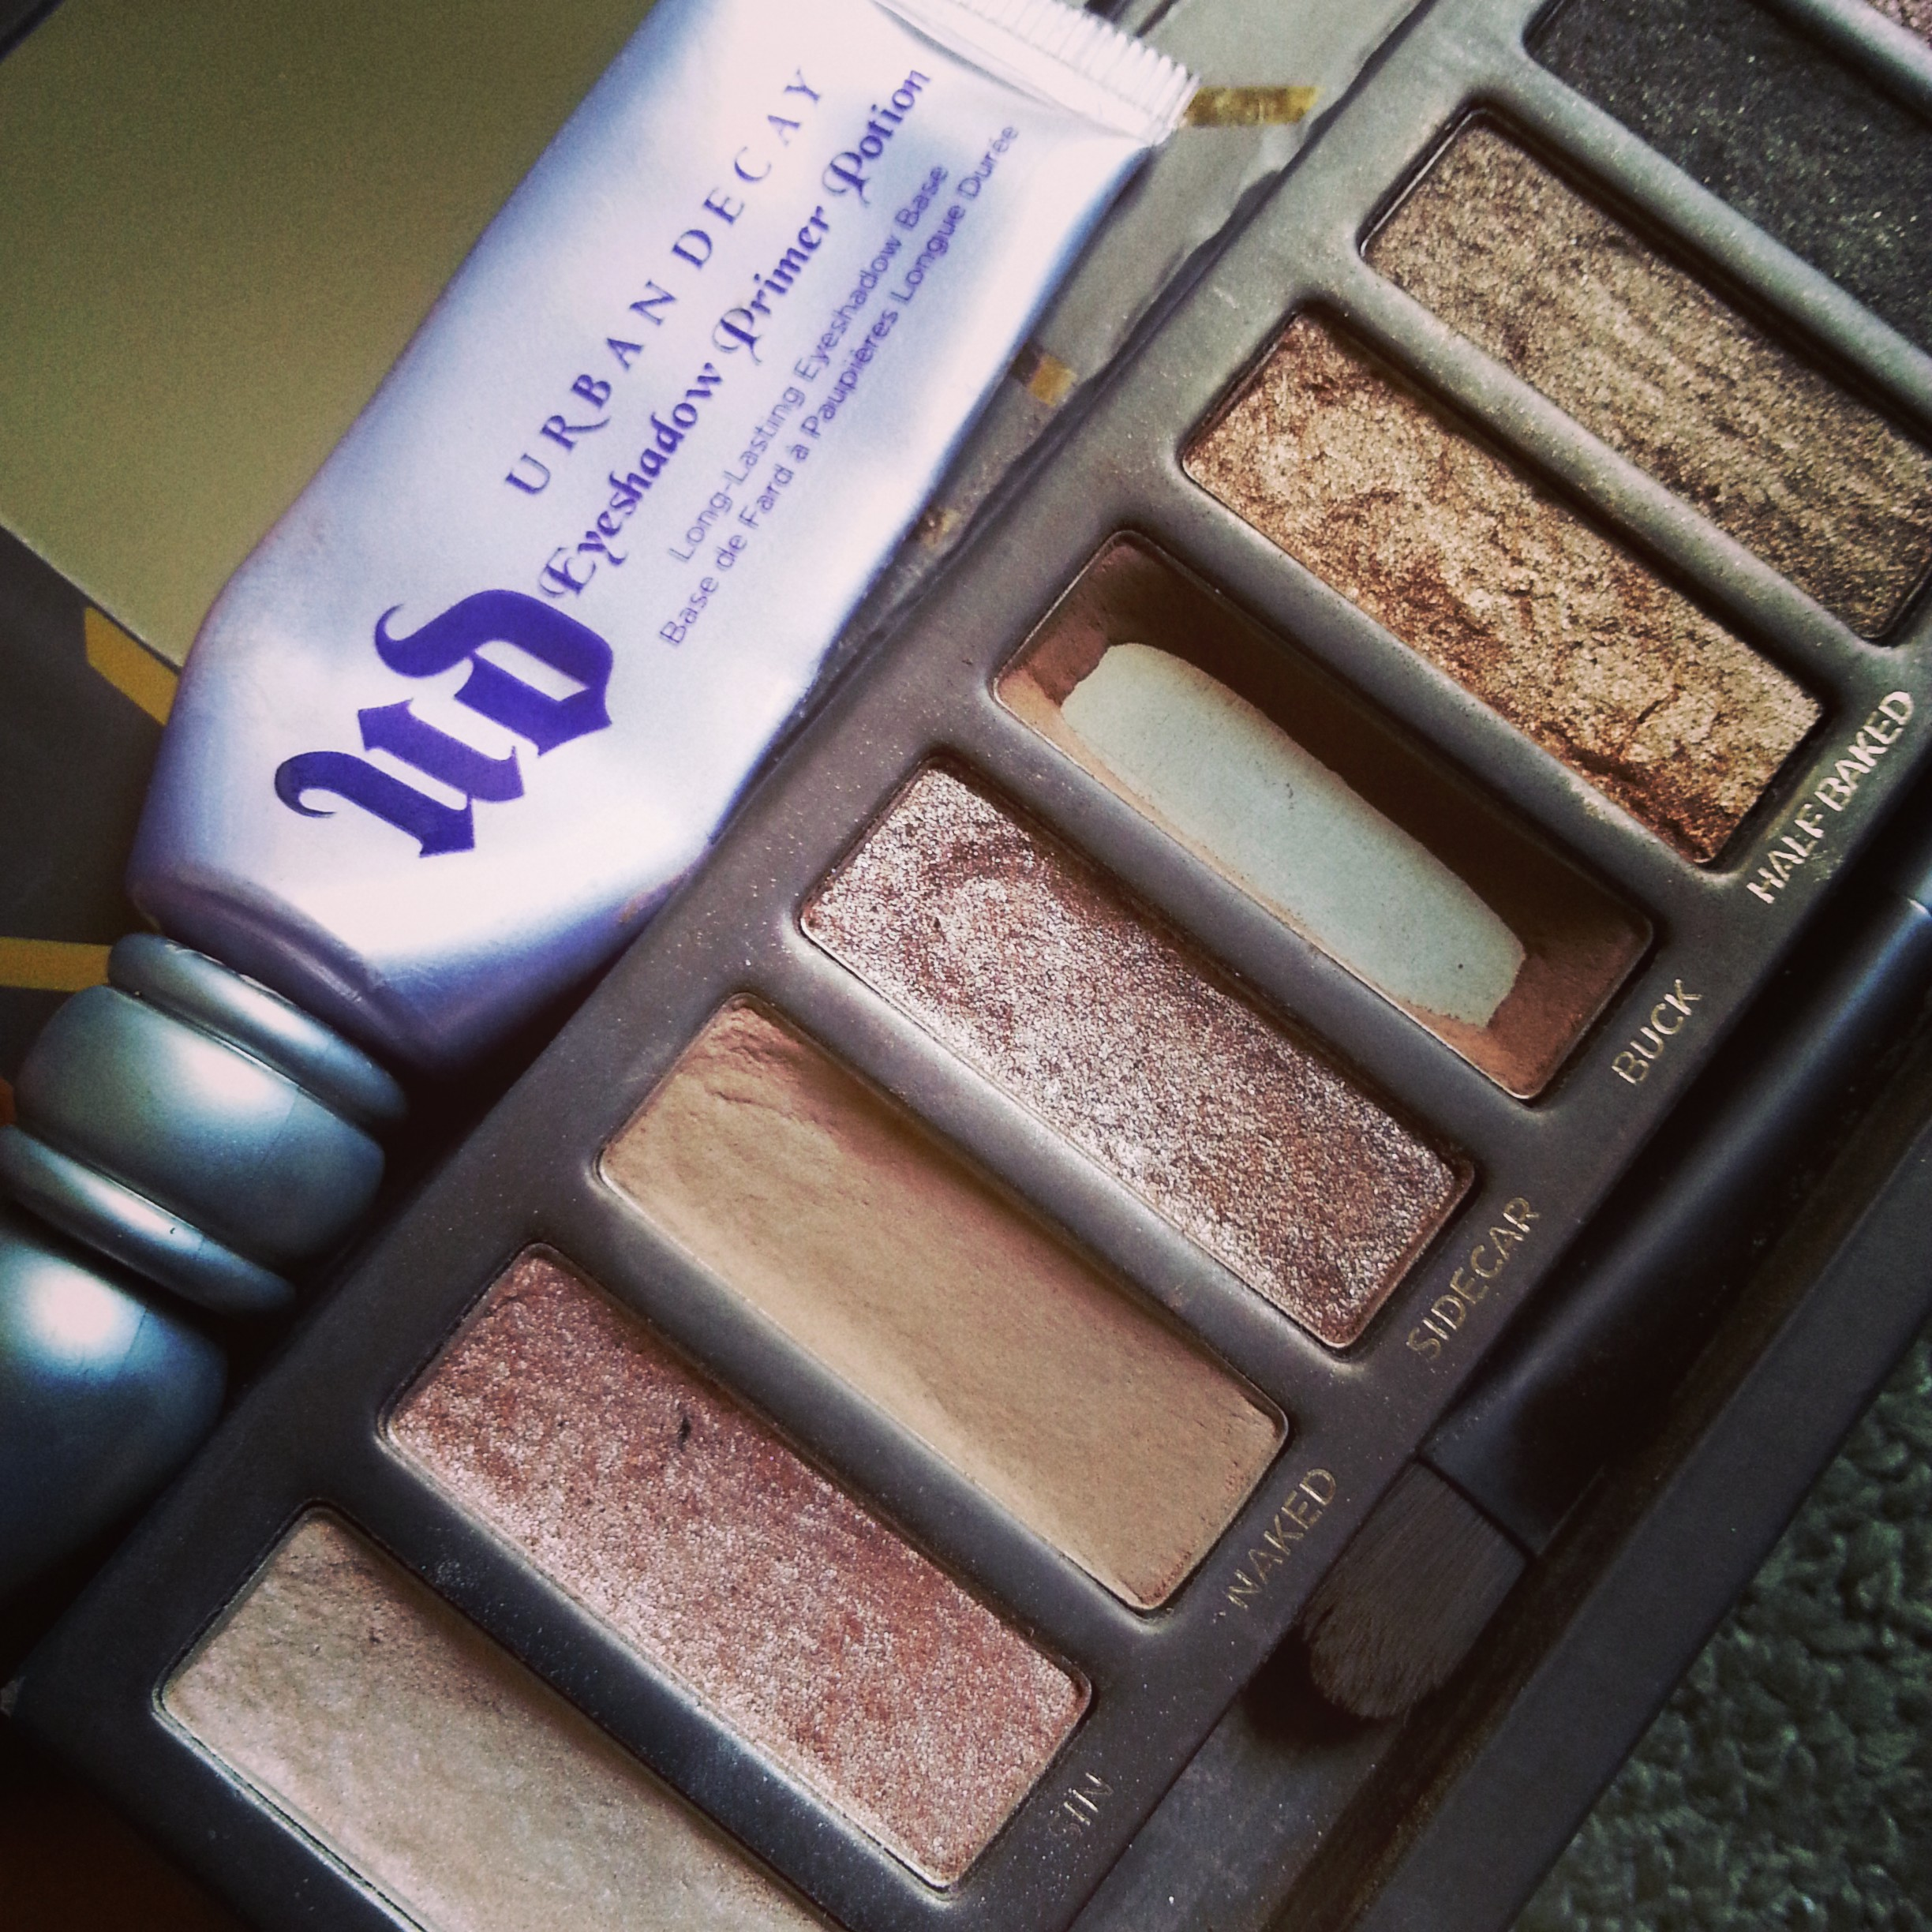 Naked 1 + Urban Decay Primer Potion